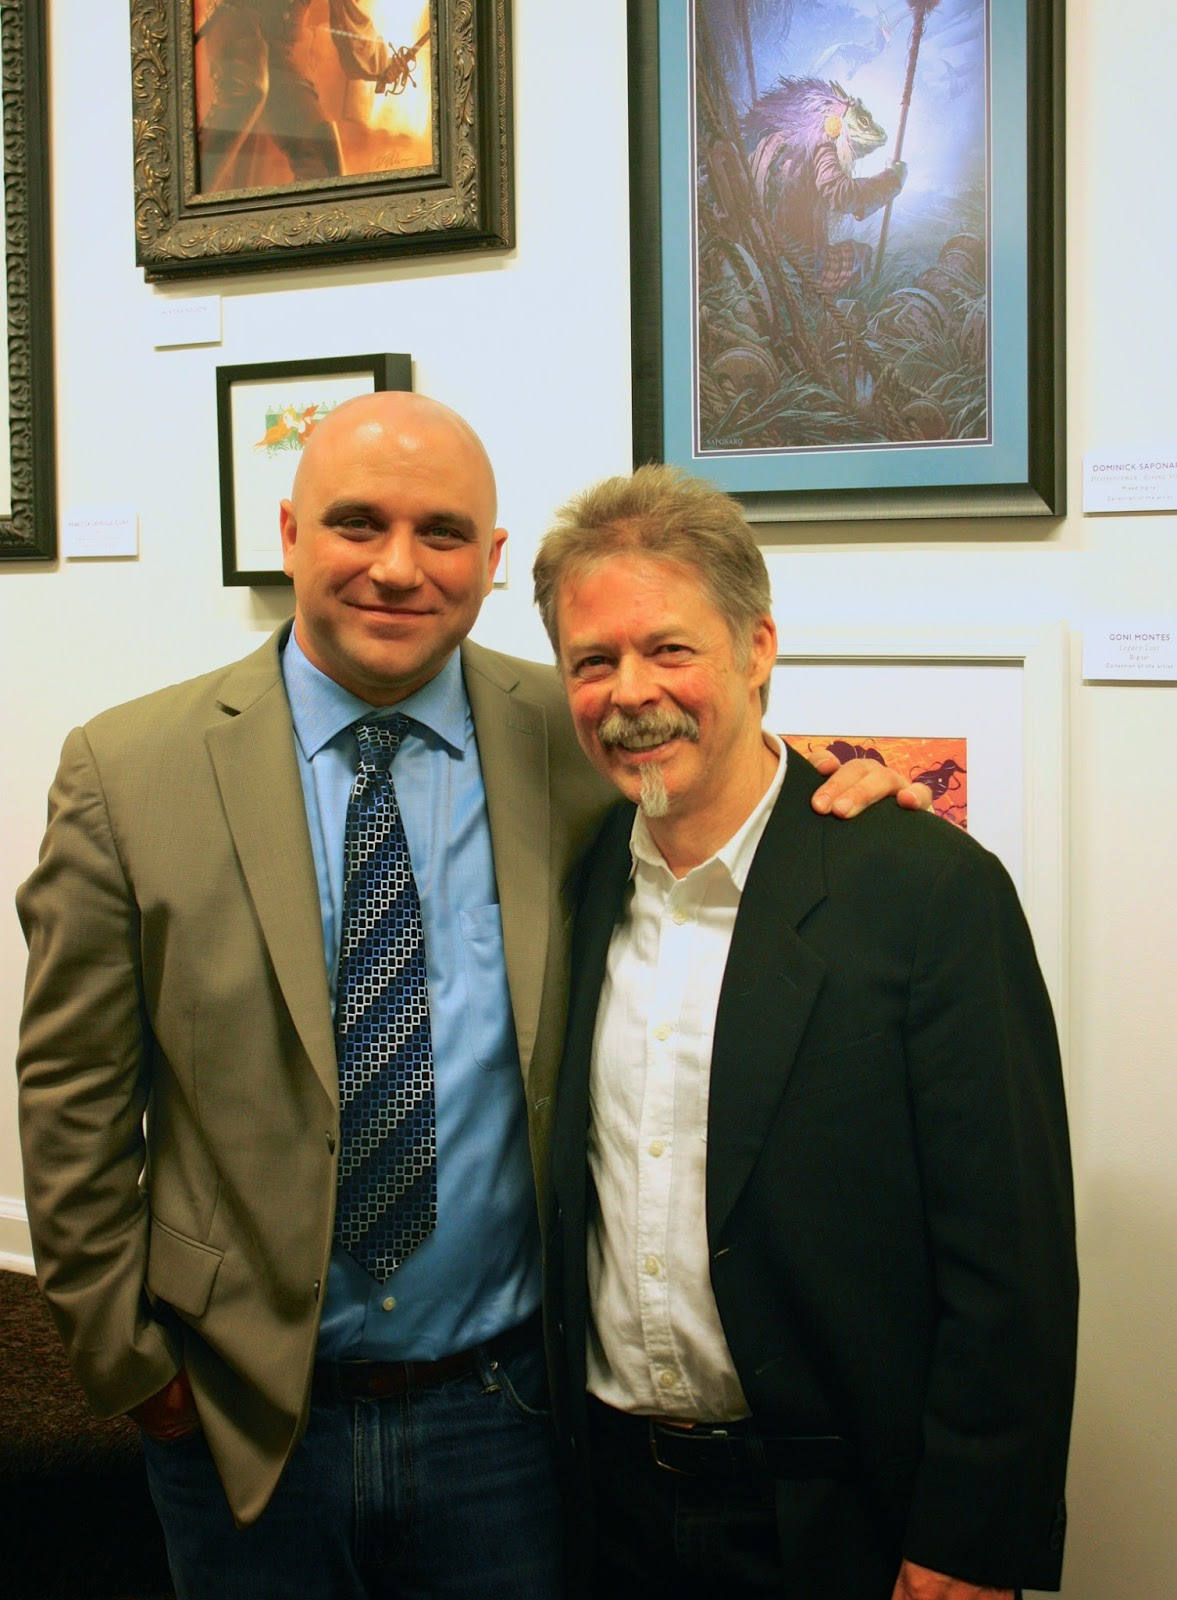 Dominick Saponaro and Greg Manchess Society of Illustrators Reception